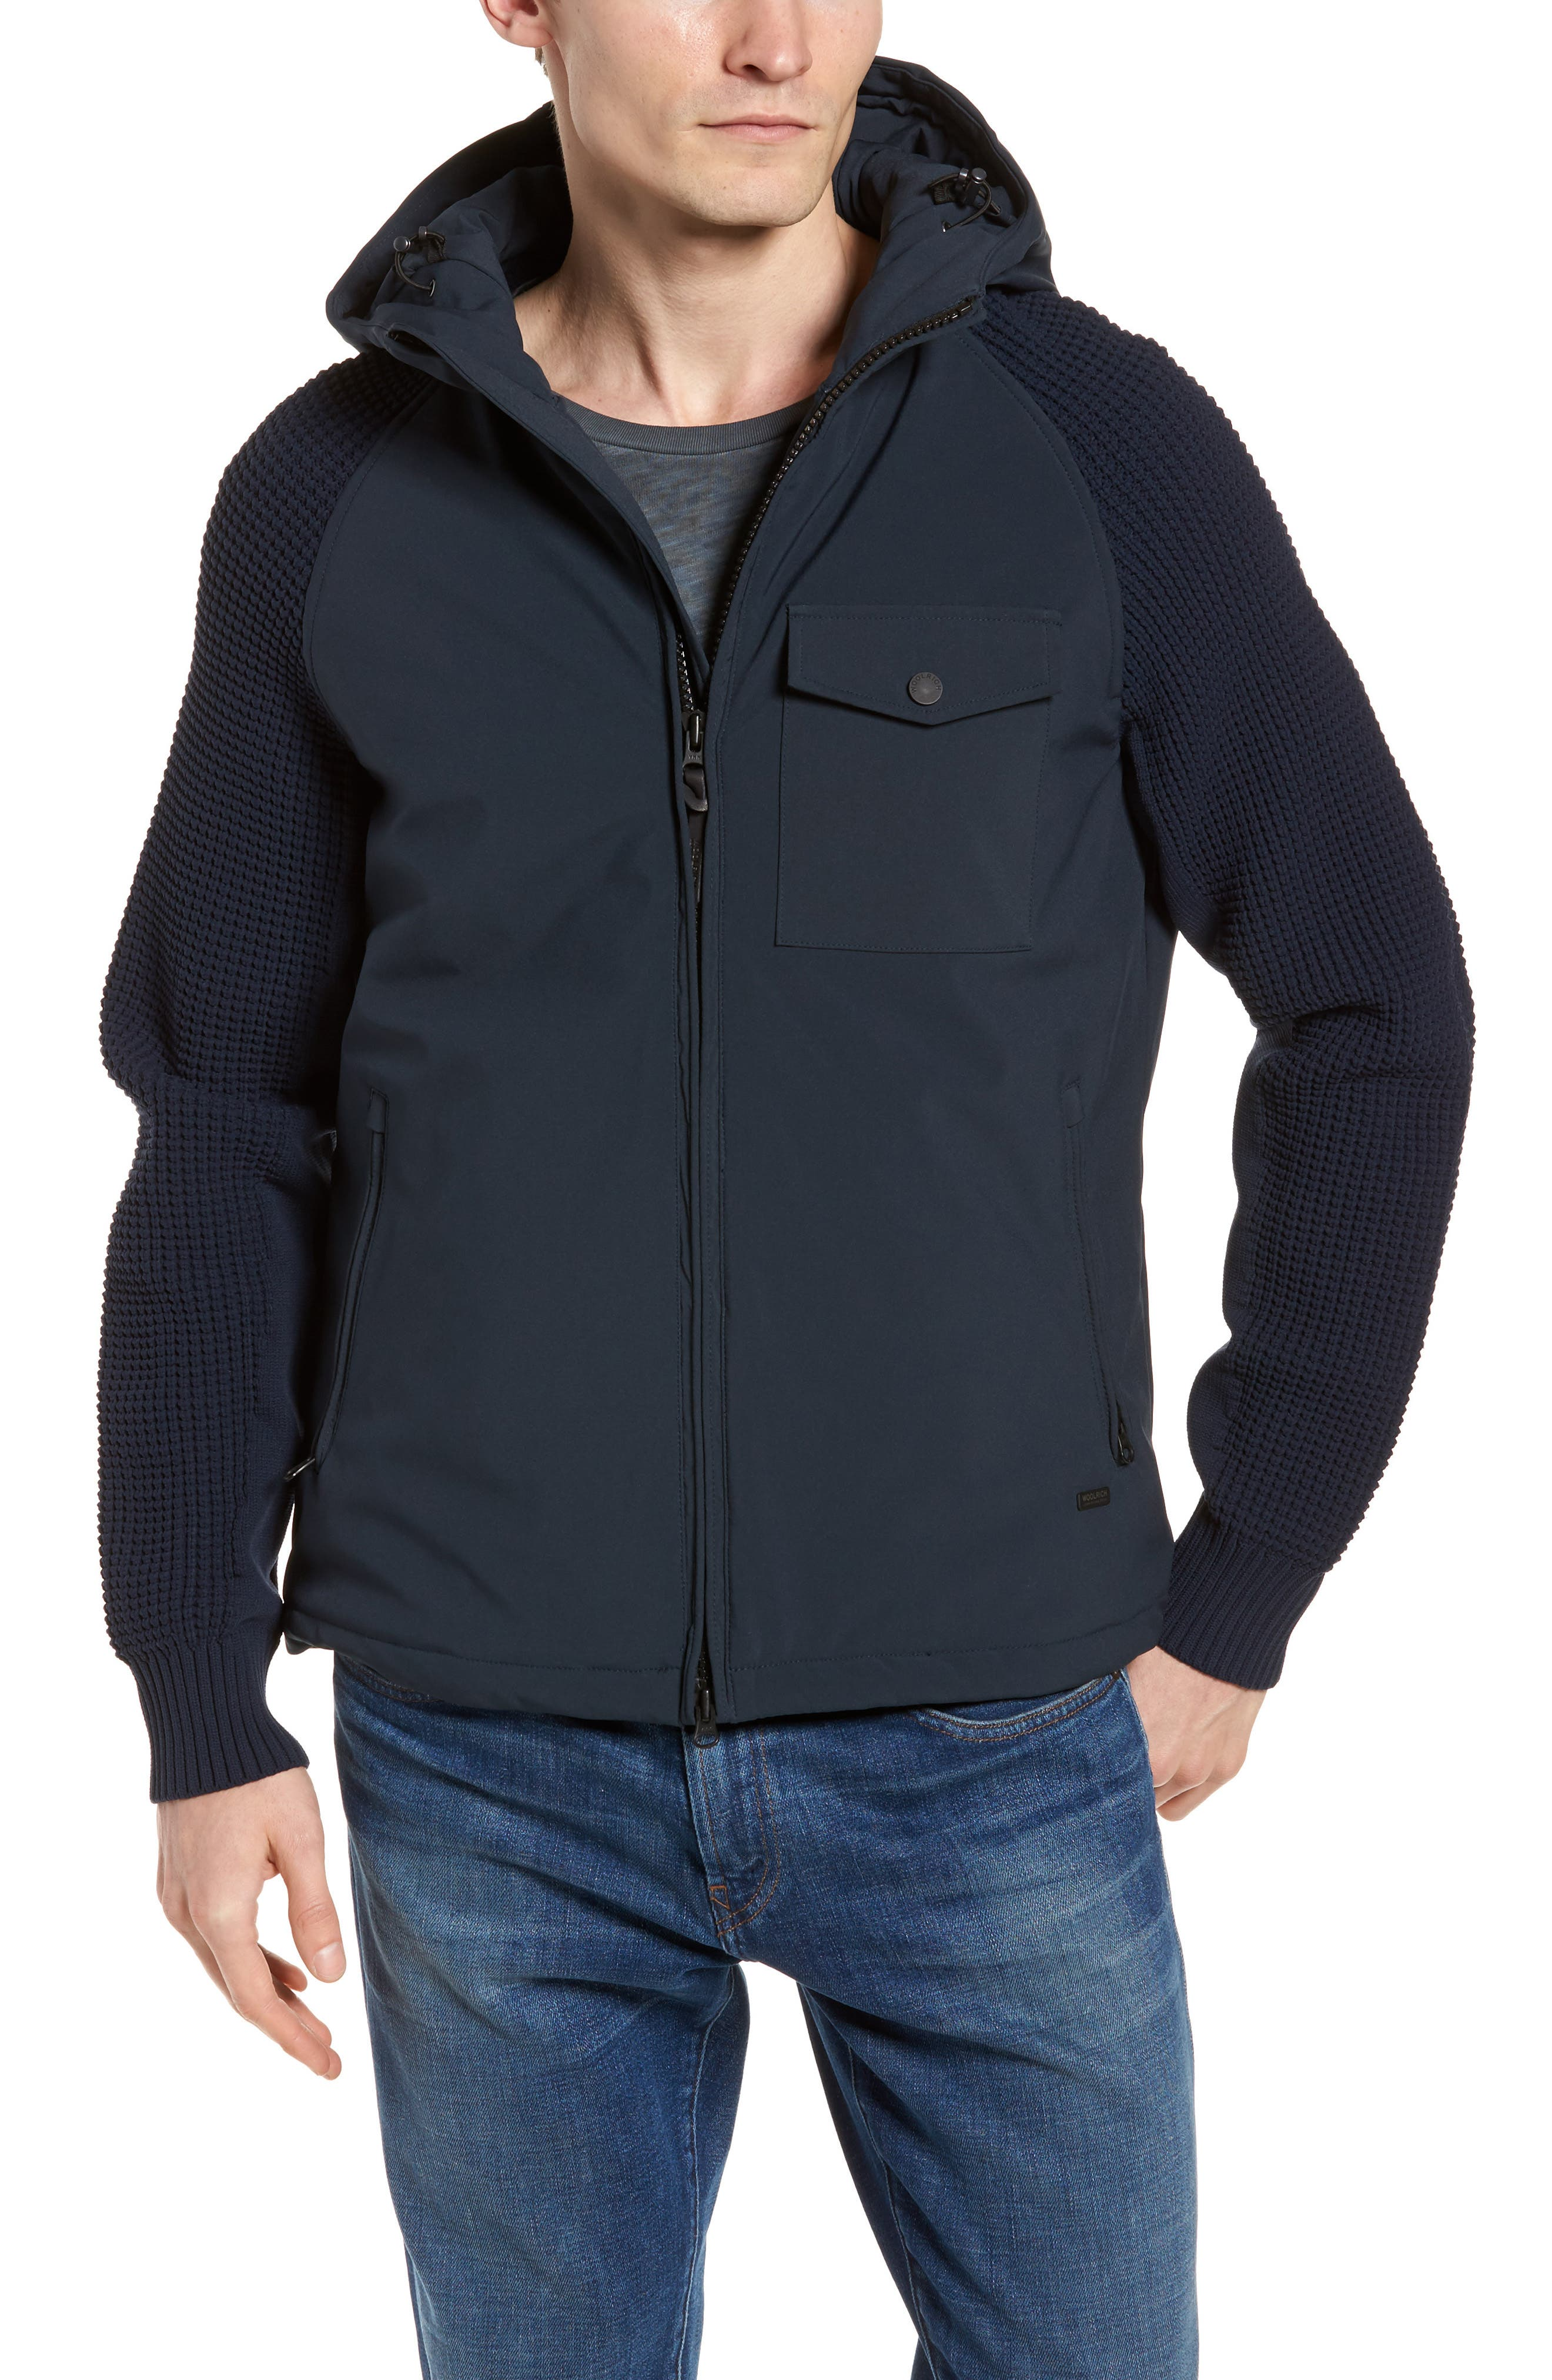 & Bros. Plum Run Jacket,                         Main,                         color, 400